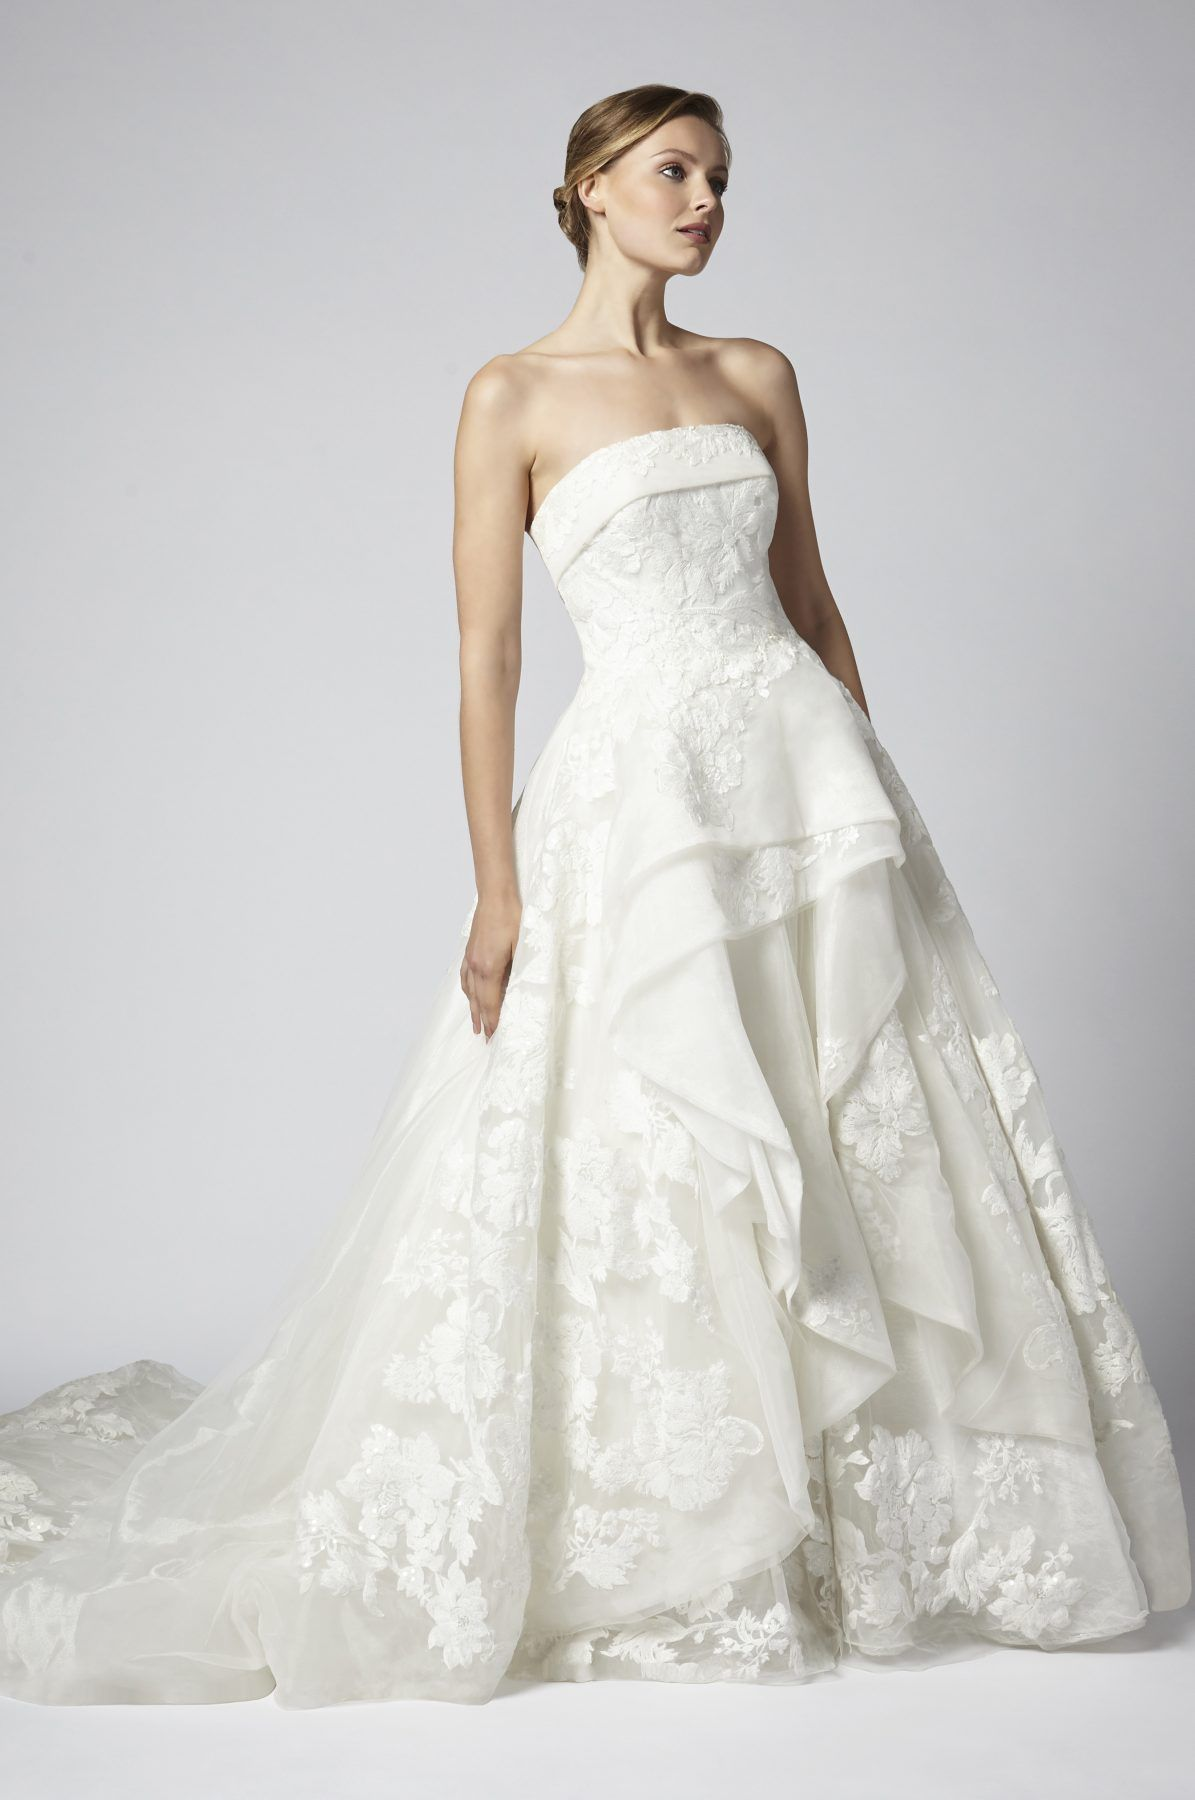 Ball gown wedding dress with bling  Strapless tulle and beaded ball gown tiered wedding dress  Henry